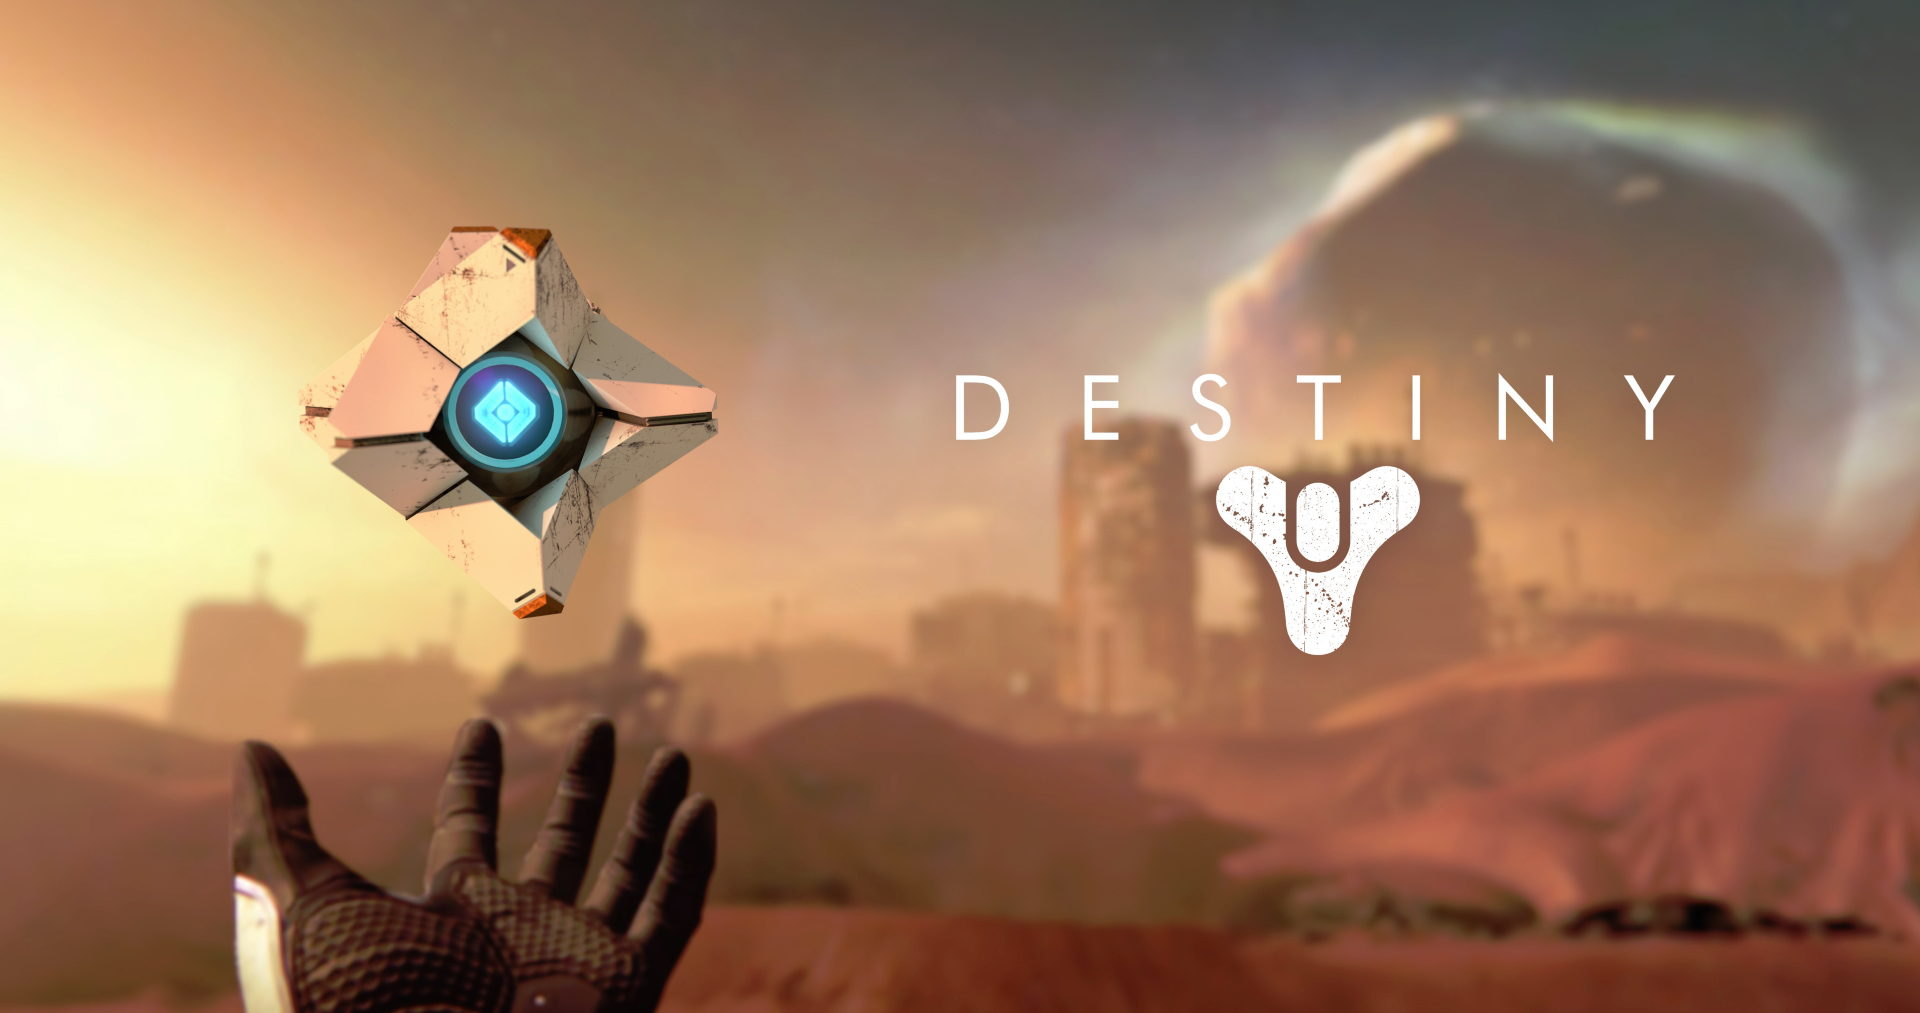 destiny wallpaper 25 - photo #6